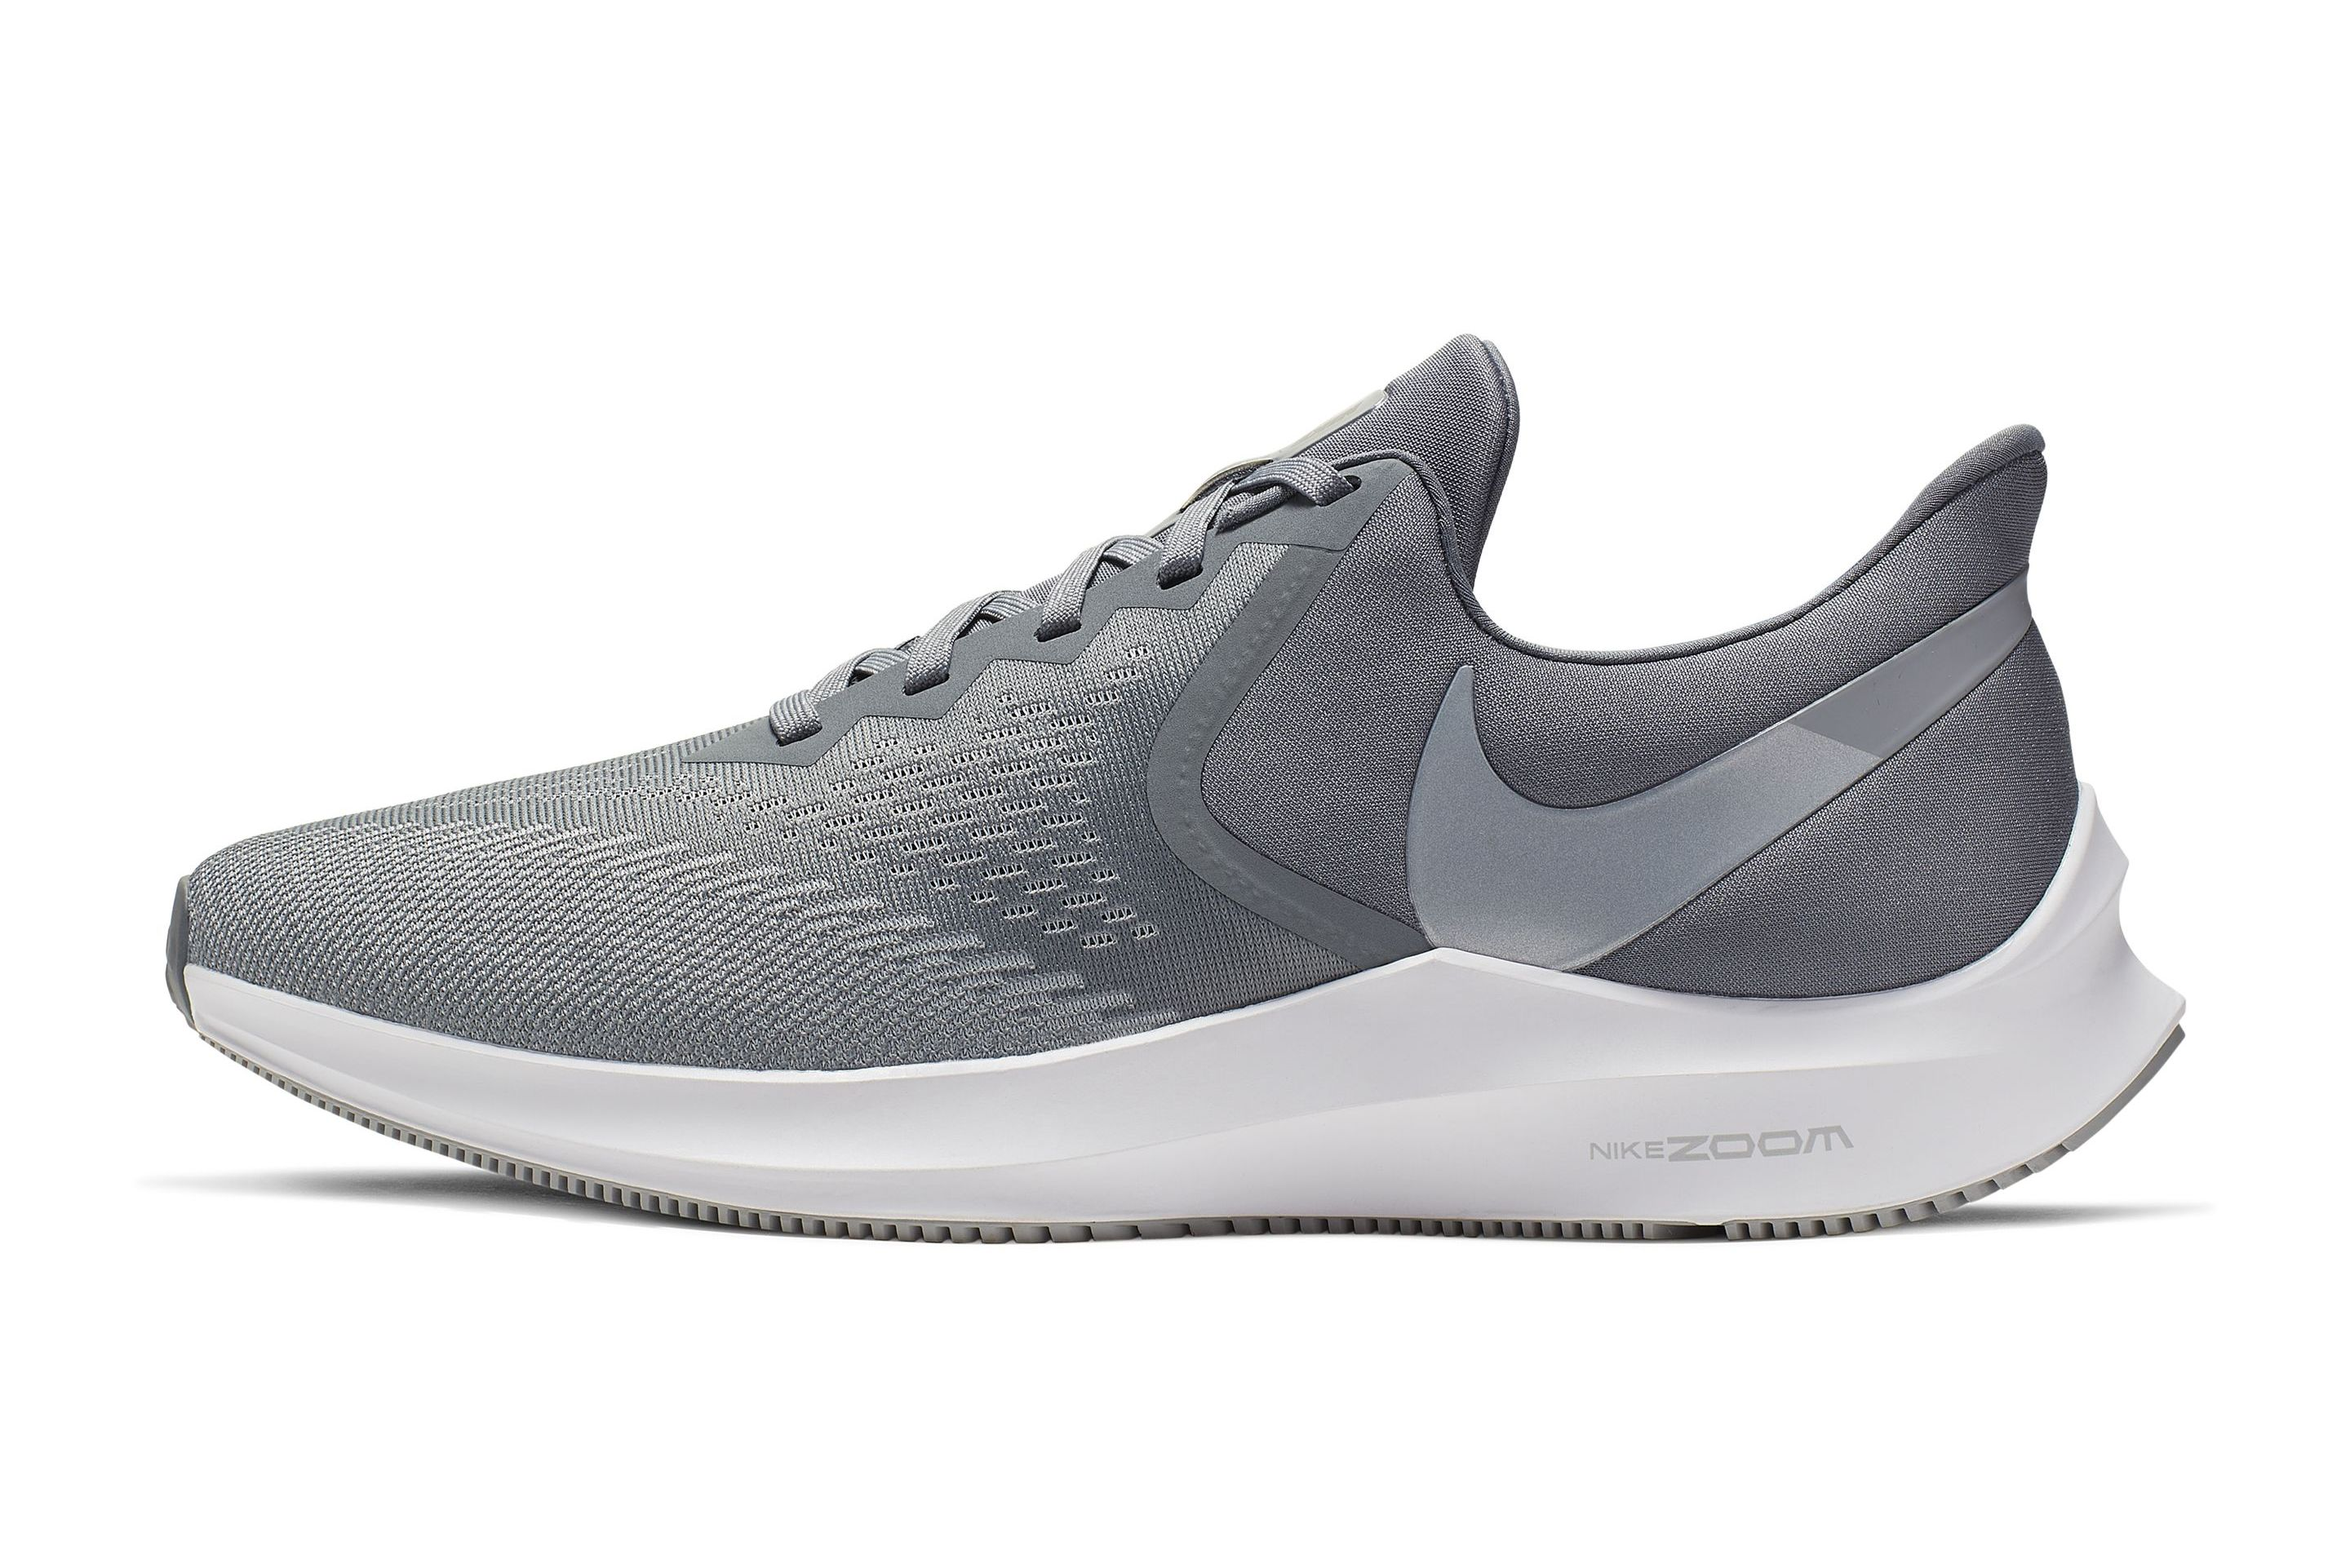 72574725b Best Nike Running Shoes | Nike Shoe Reviews 2019